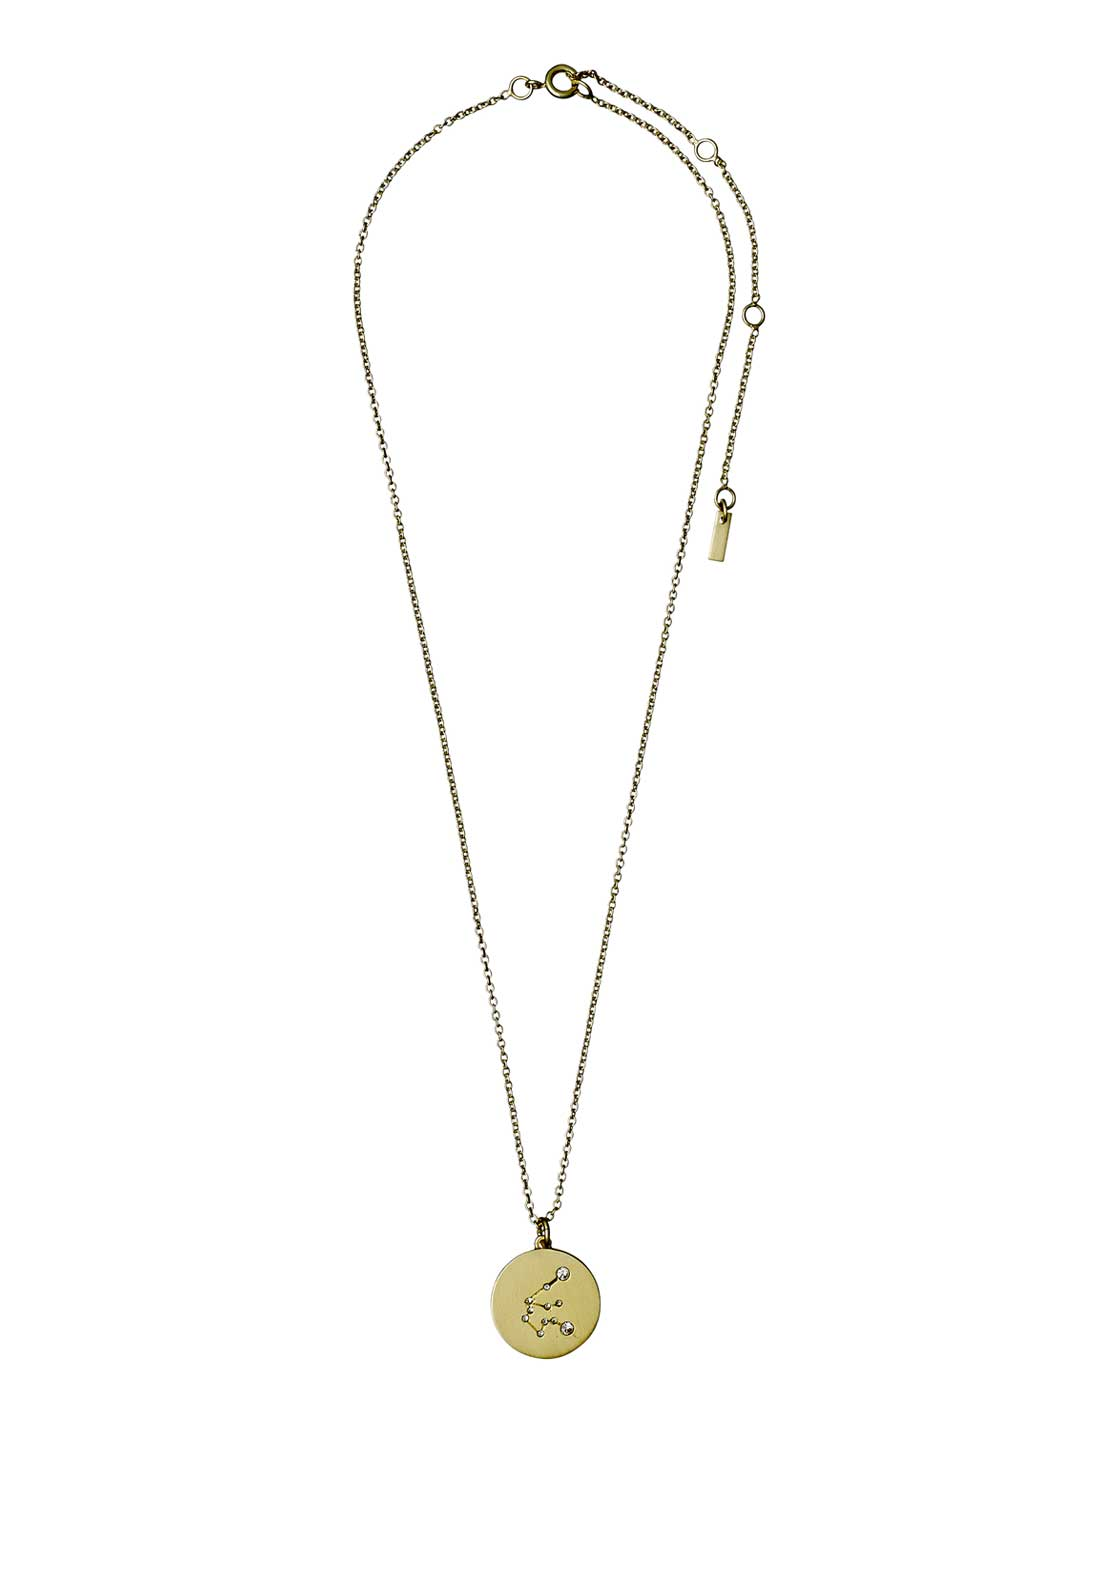 Pilgrim Aquarius Zodiac Sign Necklace, Gold